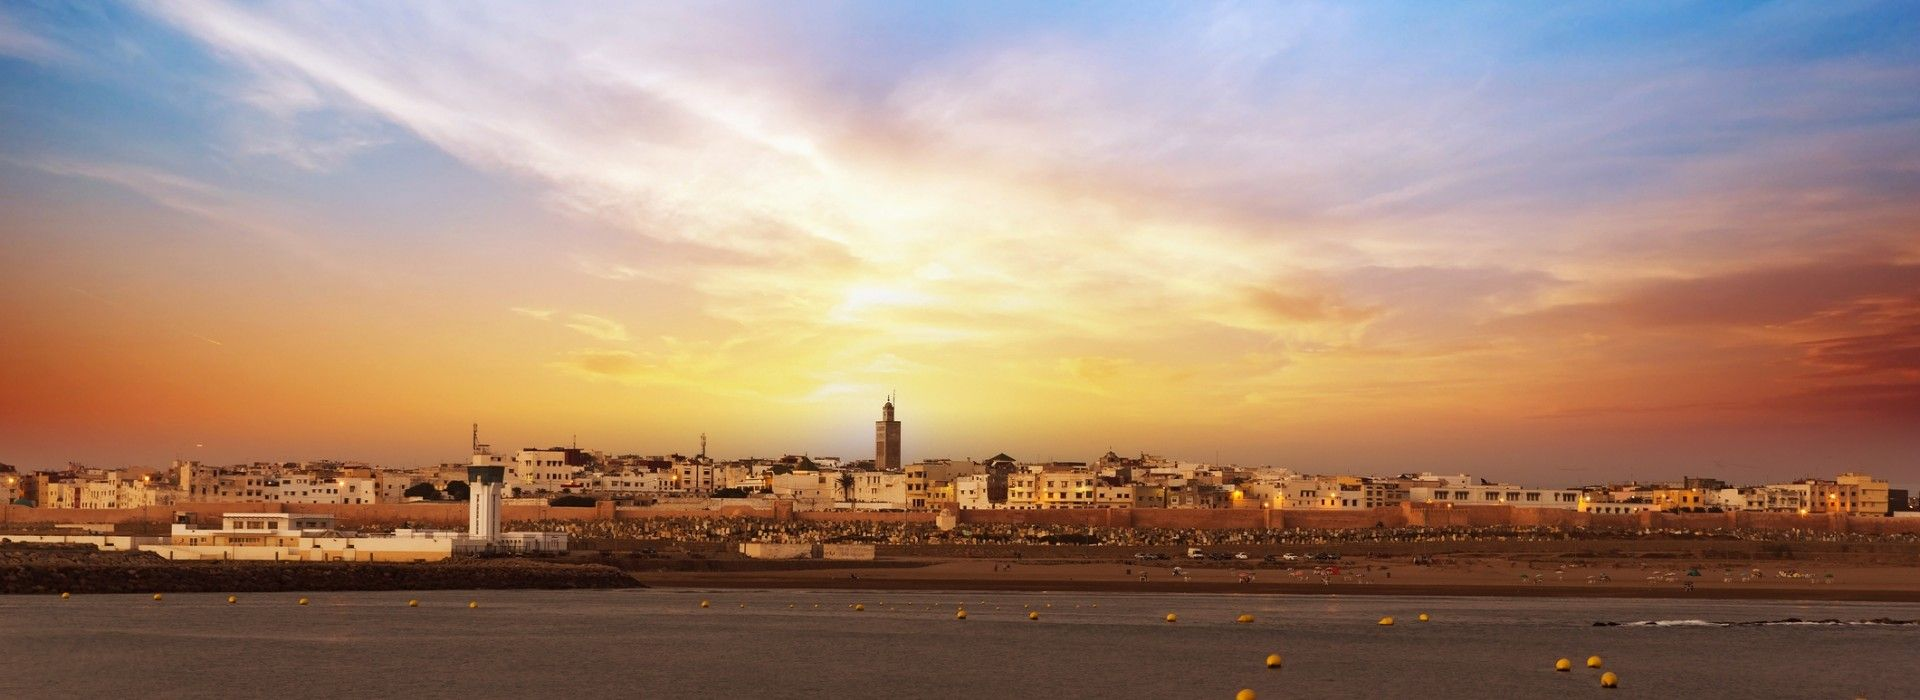 Sightseeing Tours in Morocco